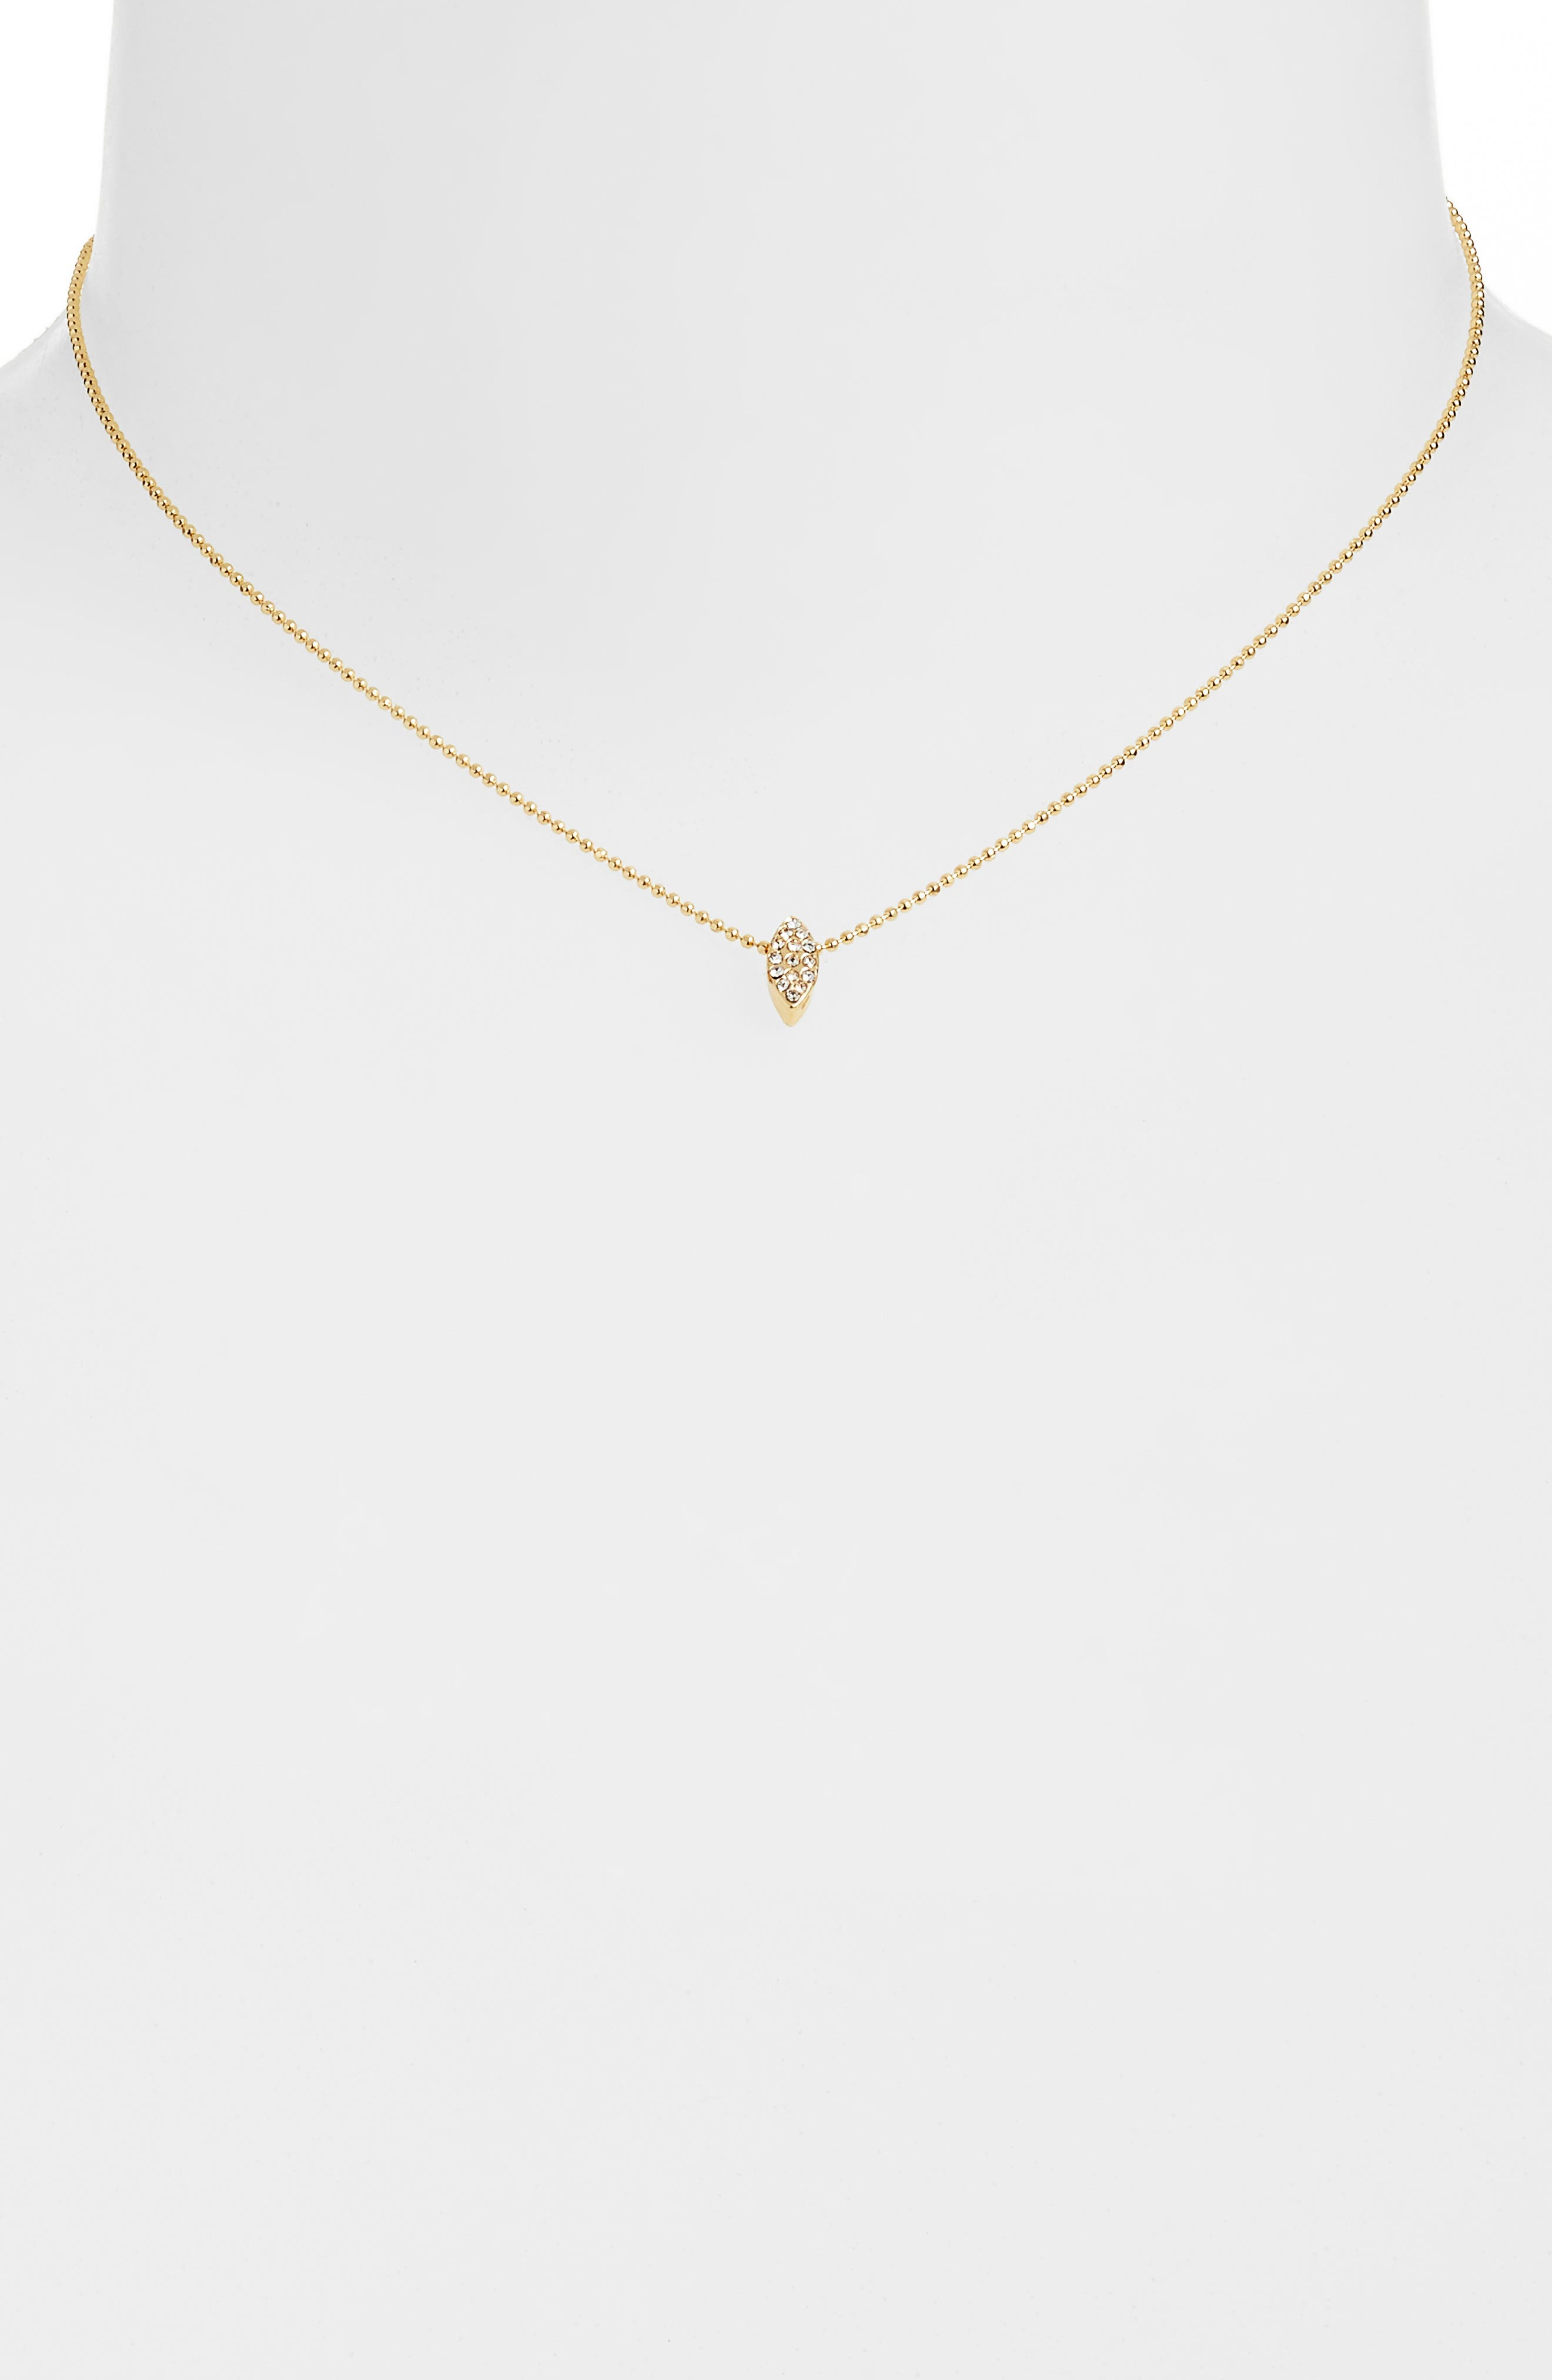 UNCOMMON JAMES BY KRISTIN CAVALLARI, Uncommon James Just a Touch Necklace, Alternate thumbnail 2, color, 710